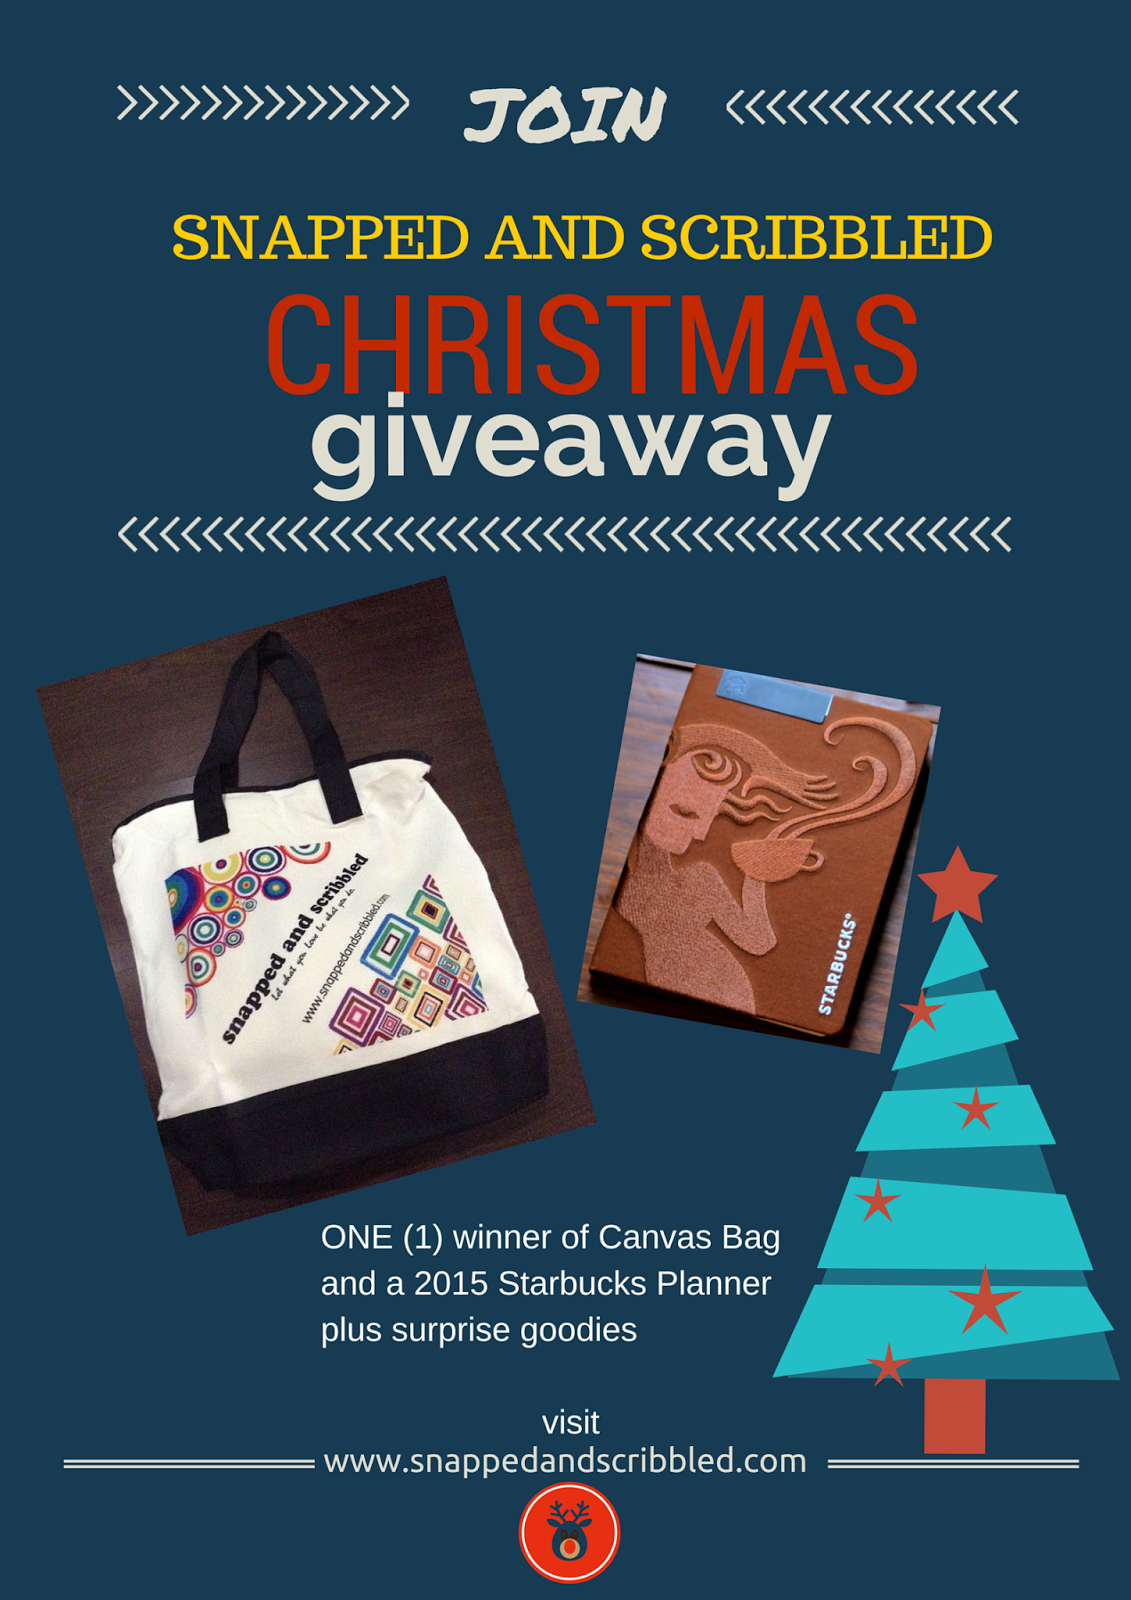 Snapped and Scribbled Christmas Giveaway